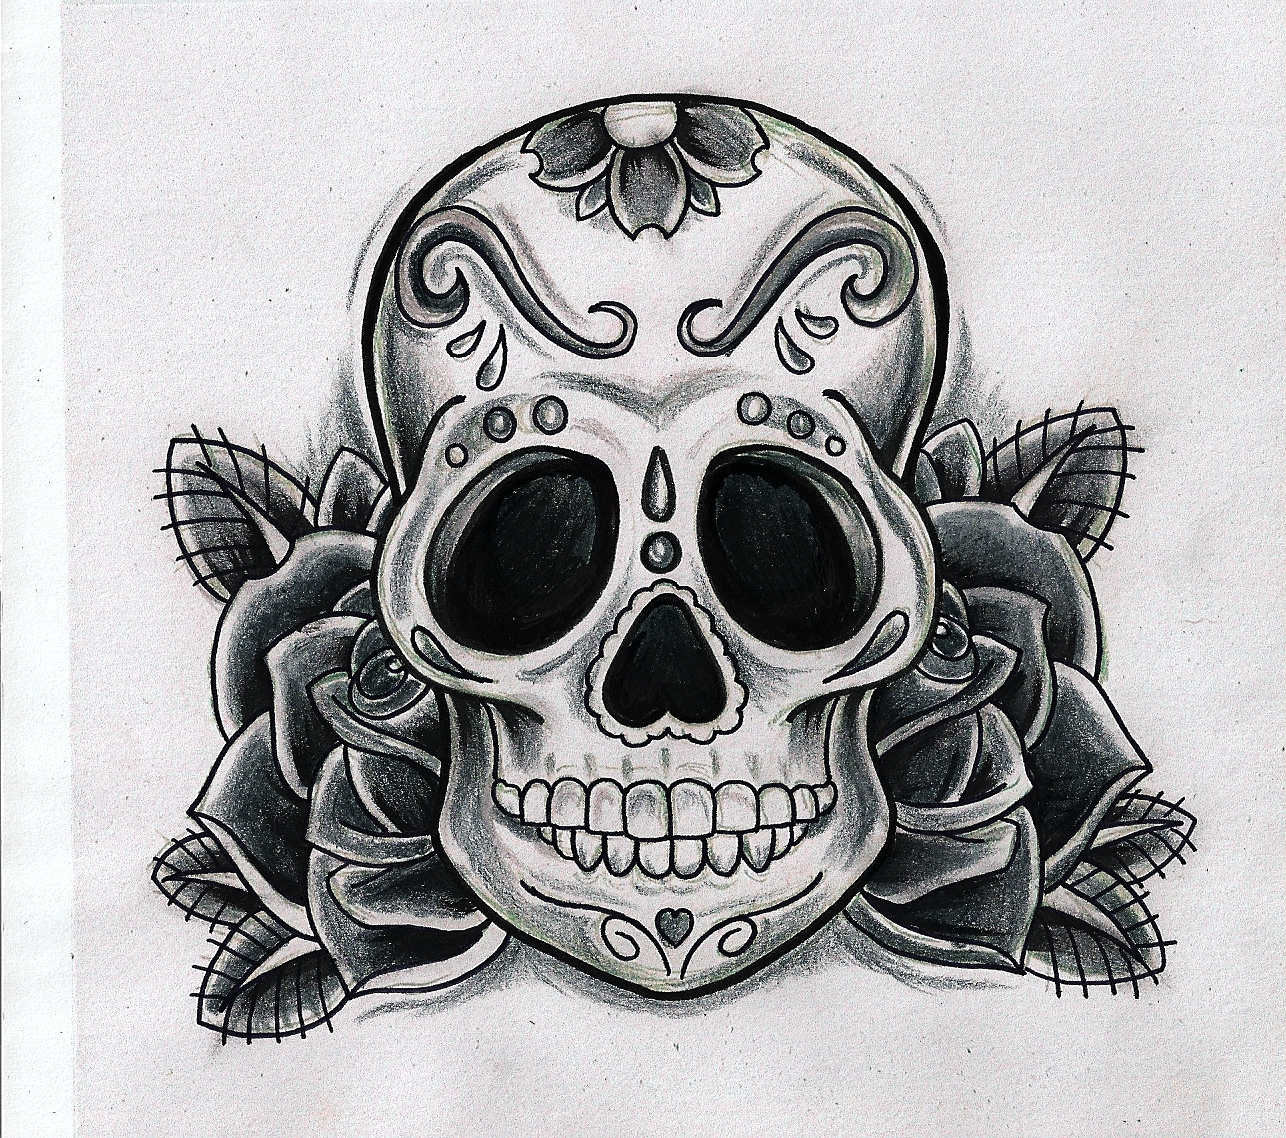 40+ Skull Tattoo Designs, Ideas | Design Trends - Premium ... |Funny Skull Designs